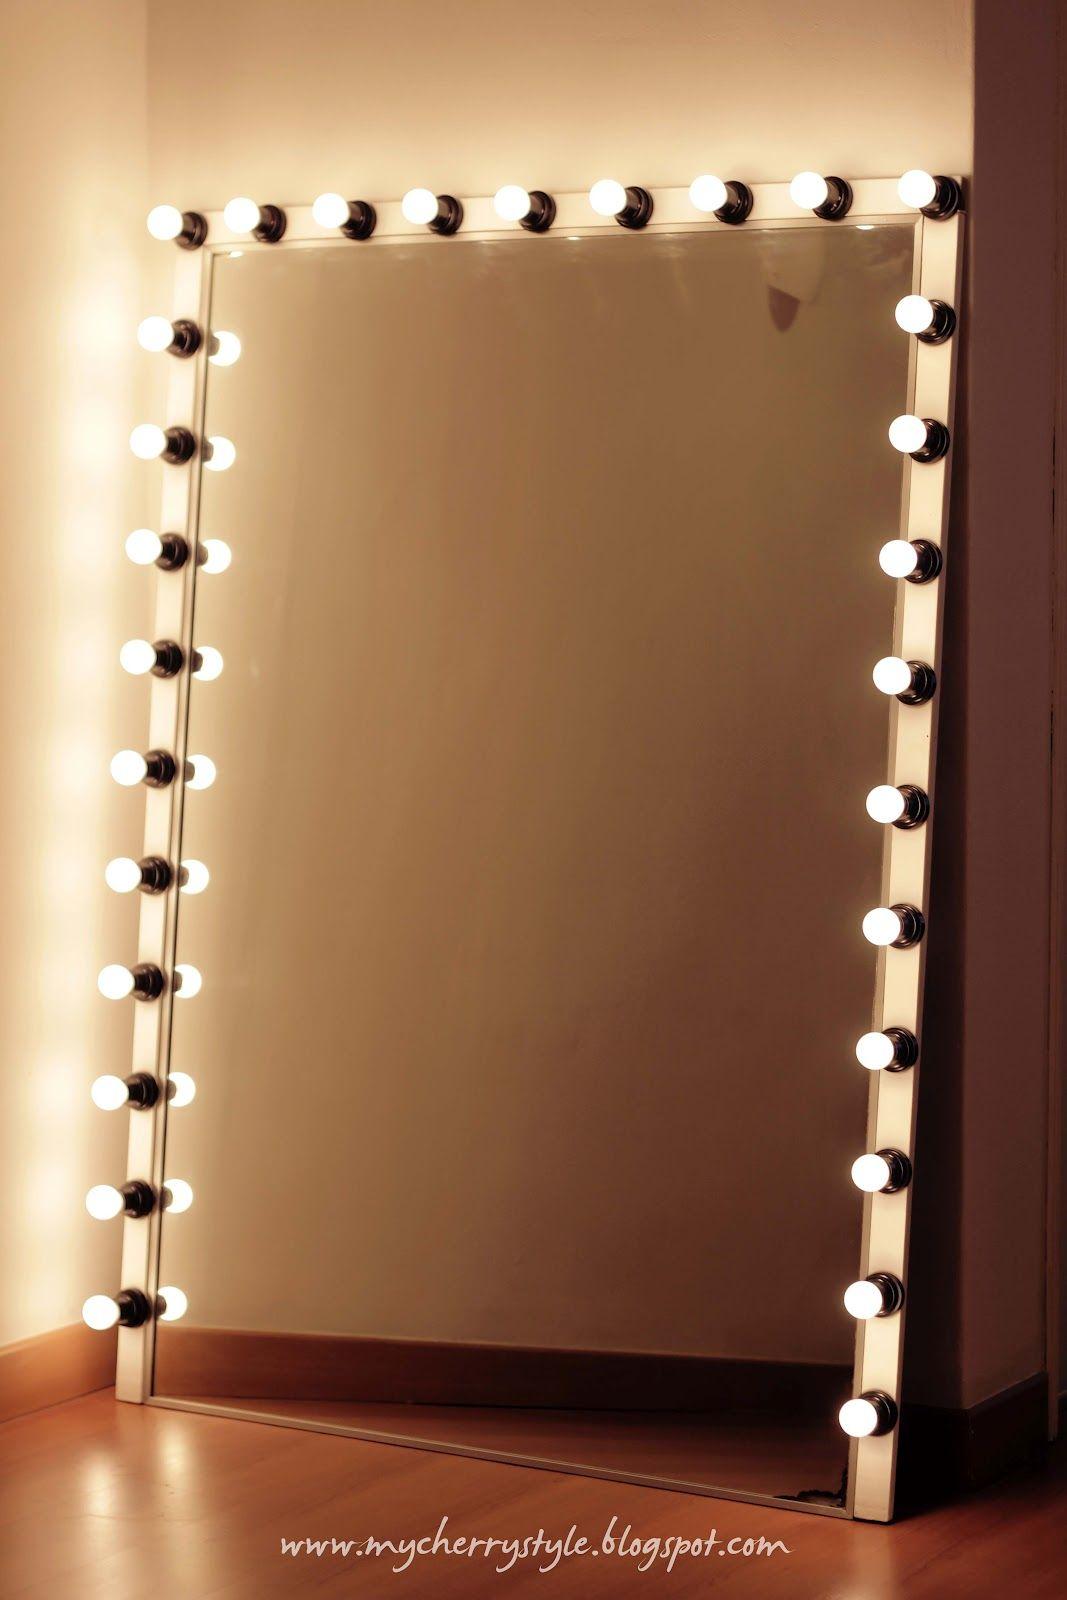 Big Vanity Mirror With Lights Fascinating Diy Hollywoodstyle Mirror With Lights Tutorial From Scratchfor Review